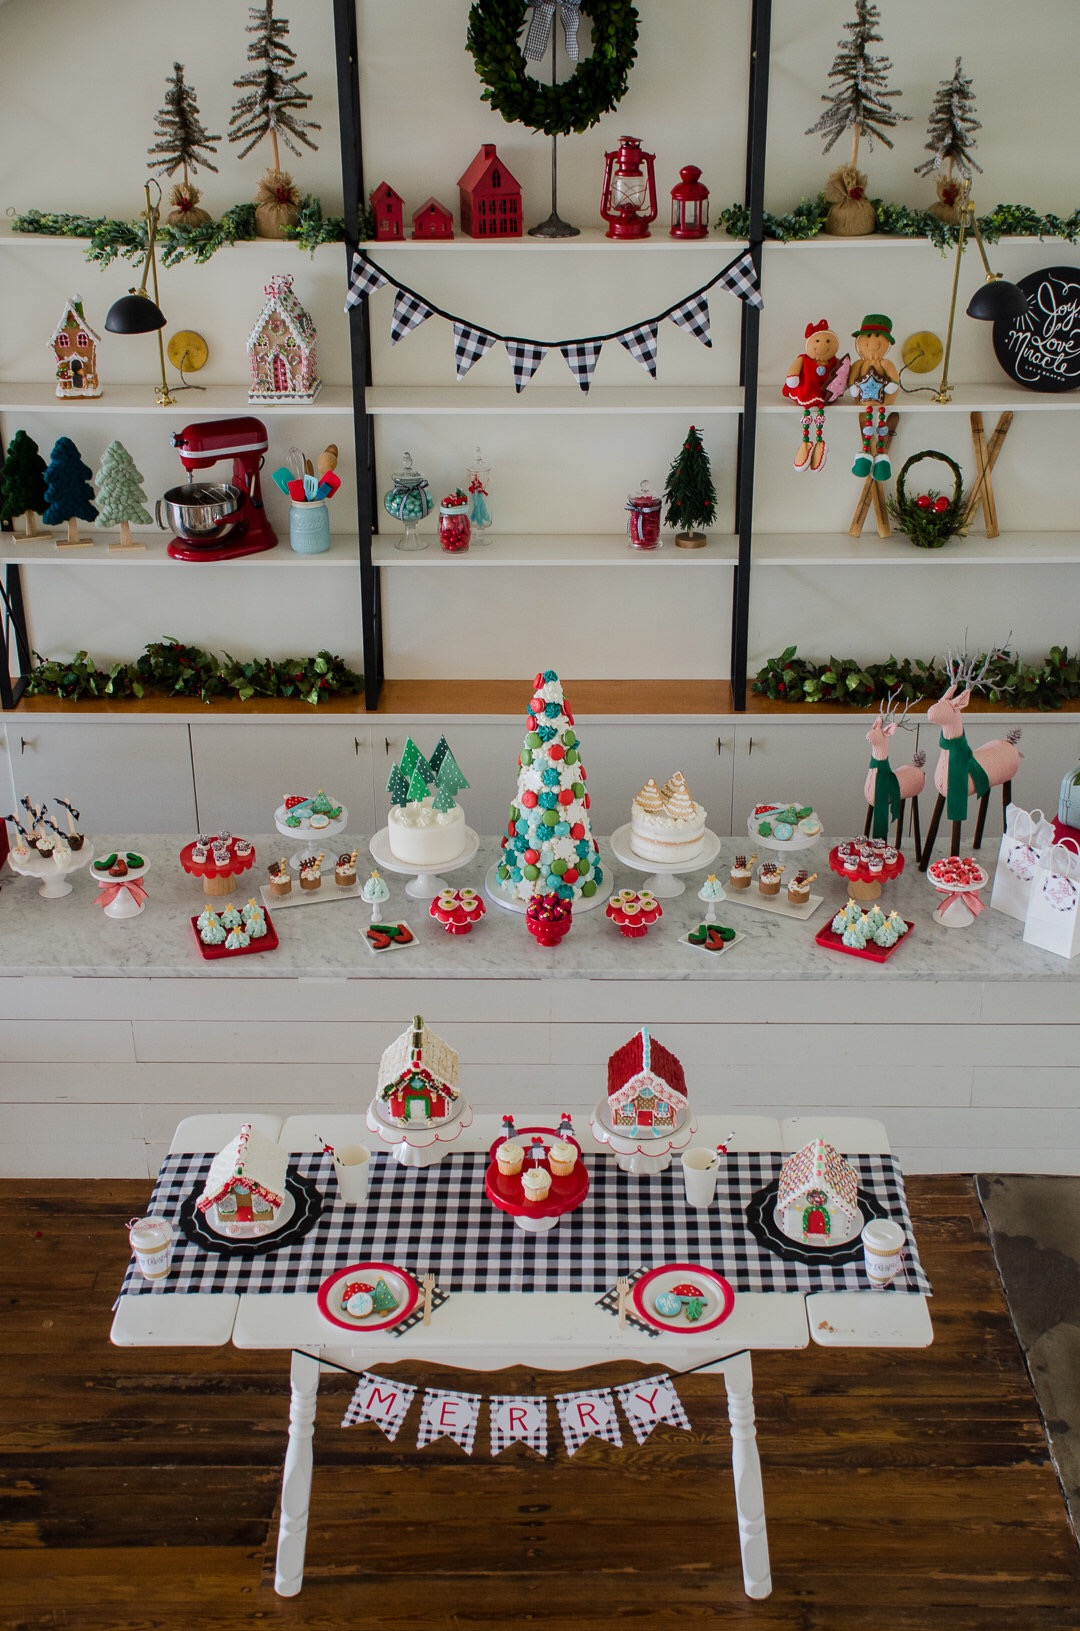 Buffalo Check and Red themed Holiday party decorations. Love the farmhouse retro look of this Christmas party. See more holiday party inspiration from Austin based party stylist Mint Event Design at www.minteventdesign.com #desserttable #christmasdesserts #holidayparty #holidays #partyideas #christmasparty #holidaypartyideas